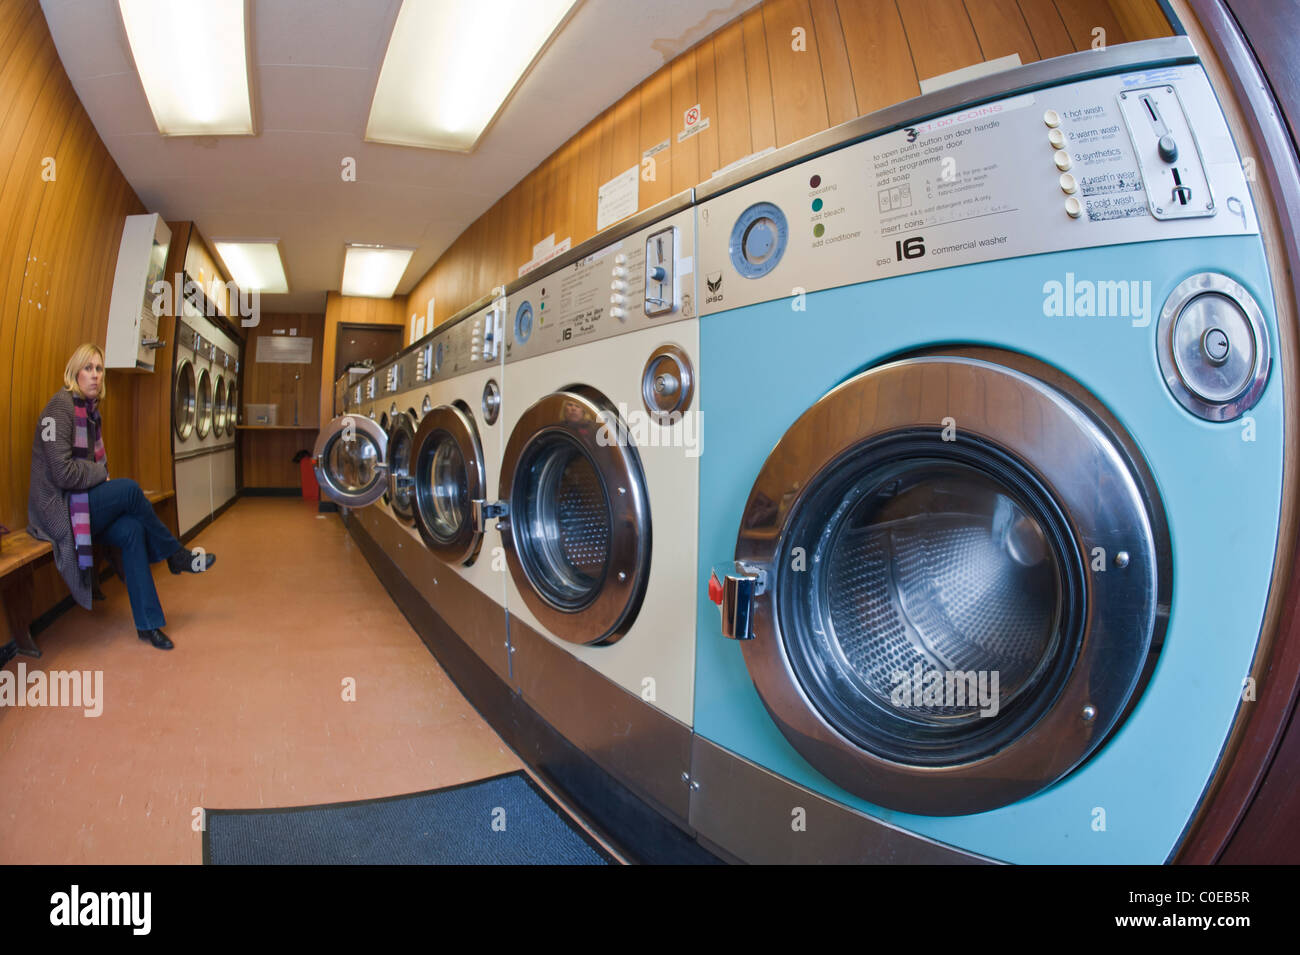 A laundrette with commercial washing machines and a MODEL RELEASED woman waiting for her washing in the background - Stock Image